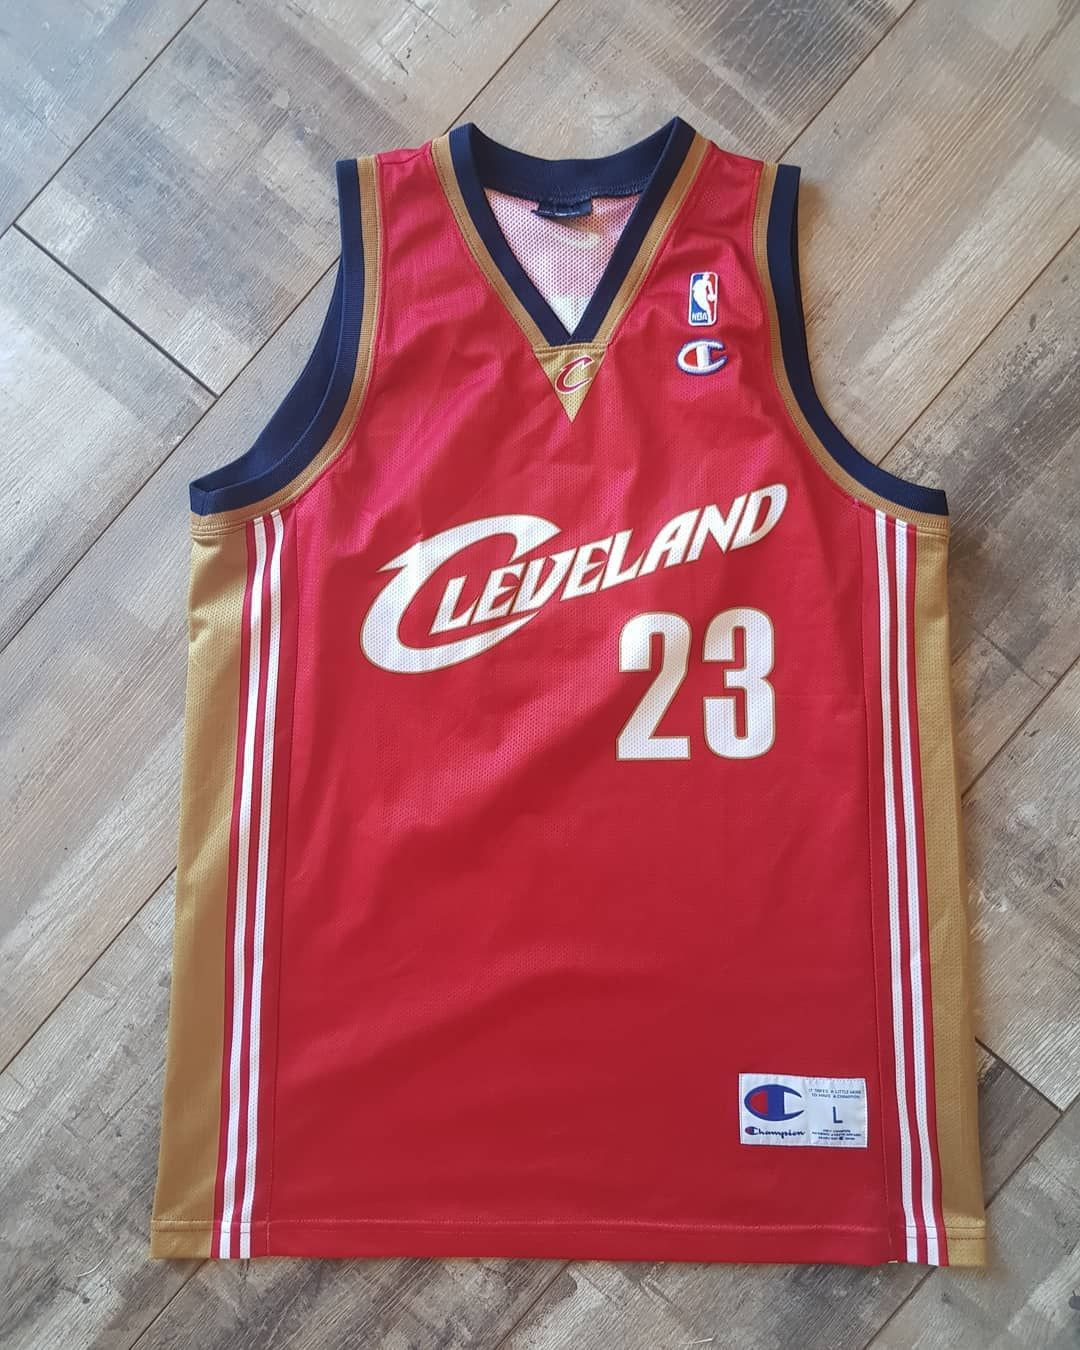 new style e23d9 0a3c5 LeBron James Cleveland Cavaliers Jersey Size Large. 30 ...